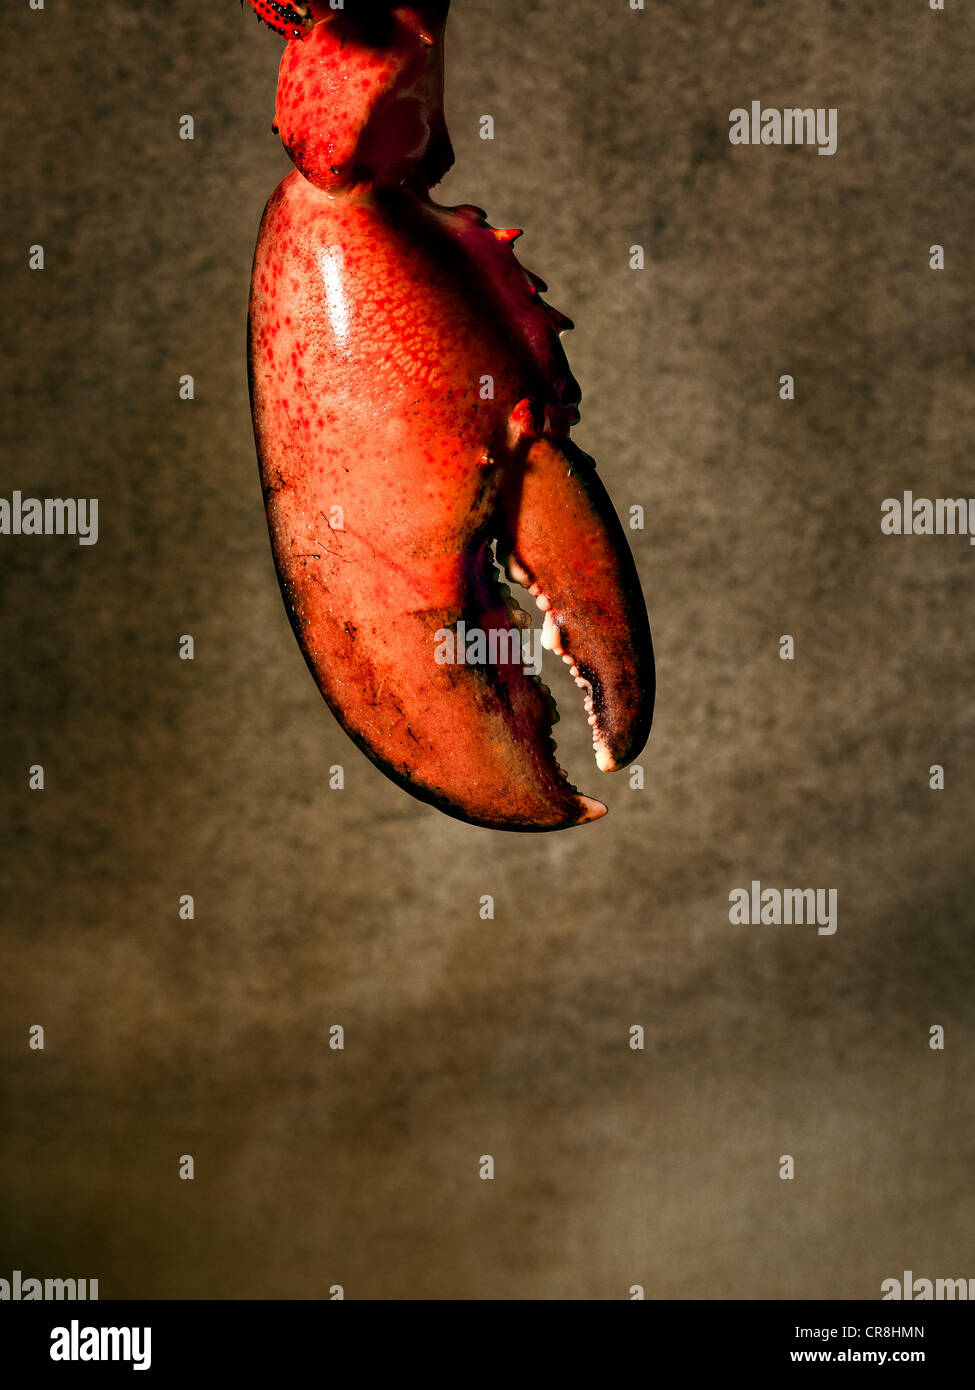 Lobster claw - Stock Image